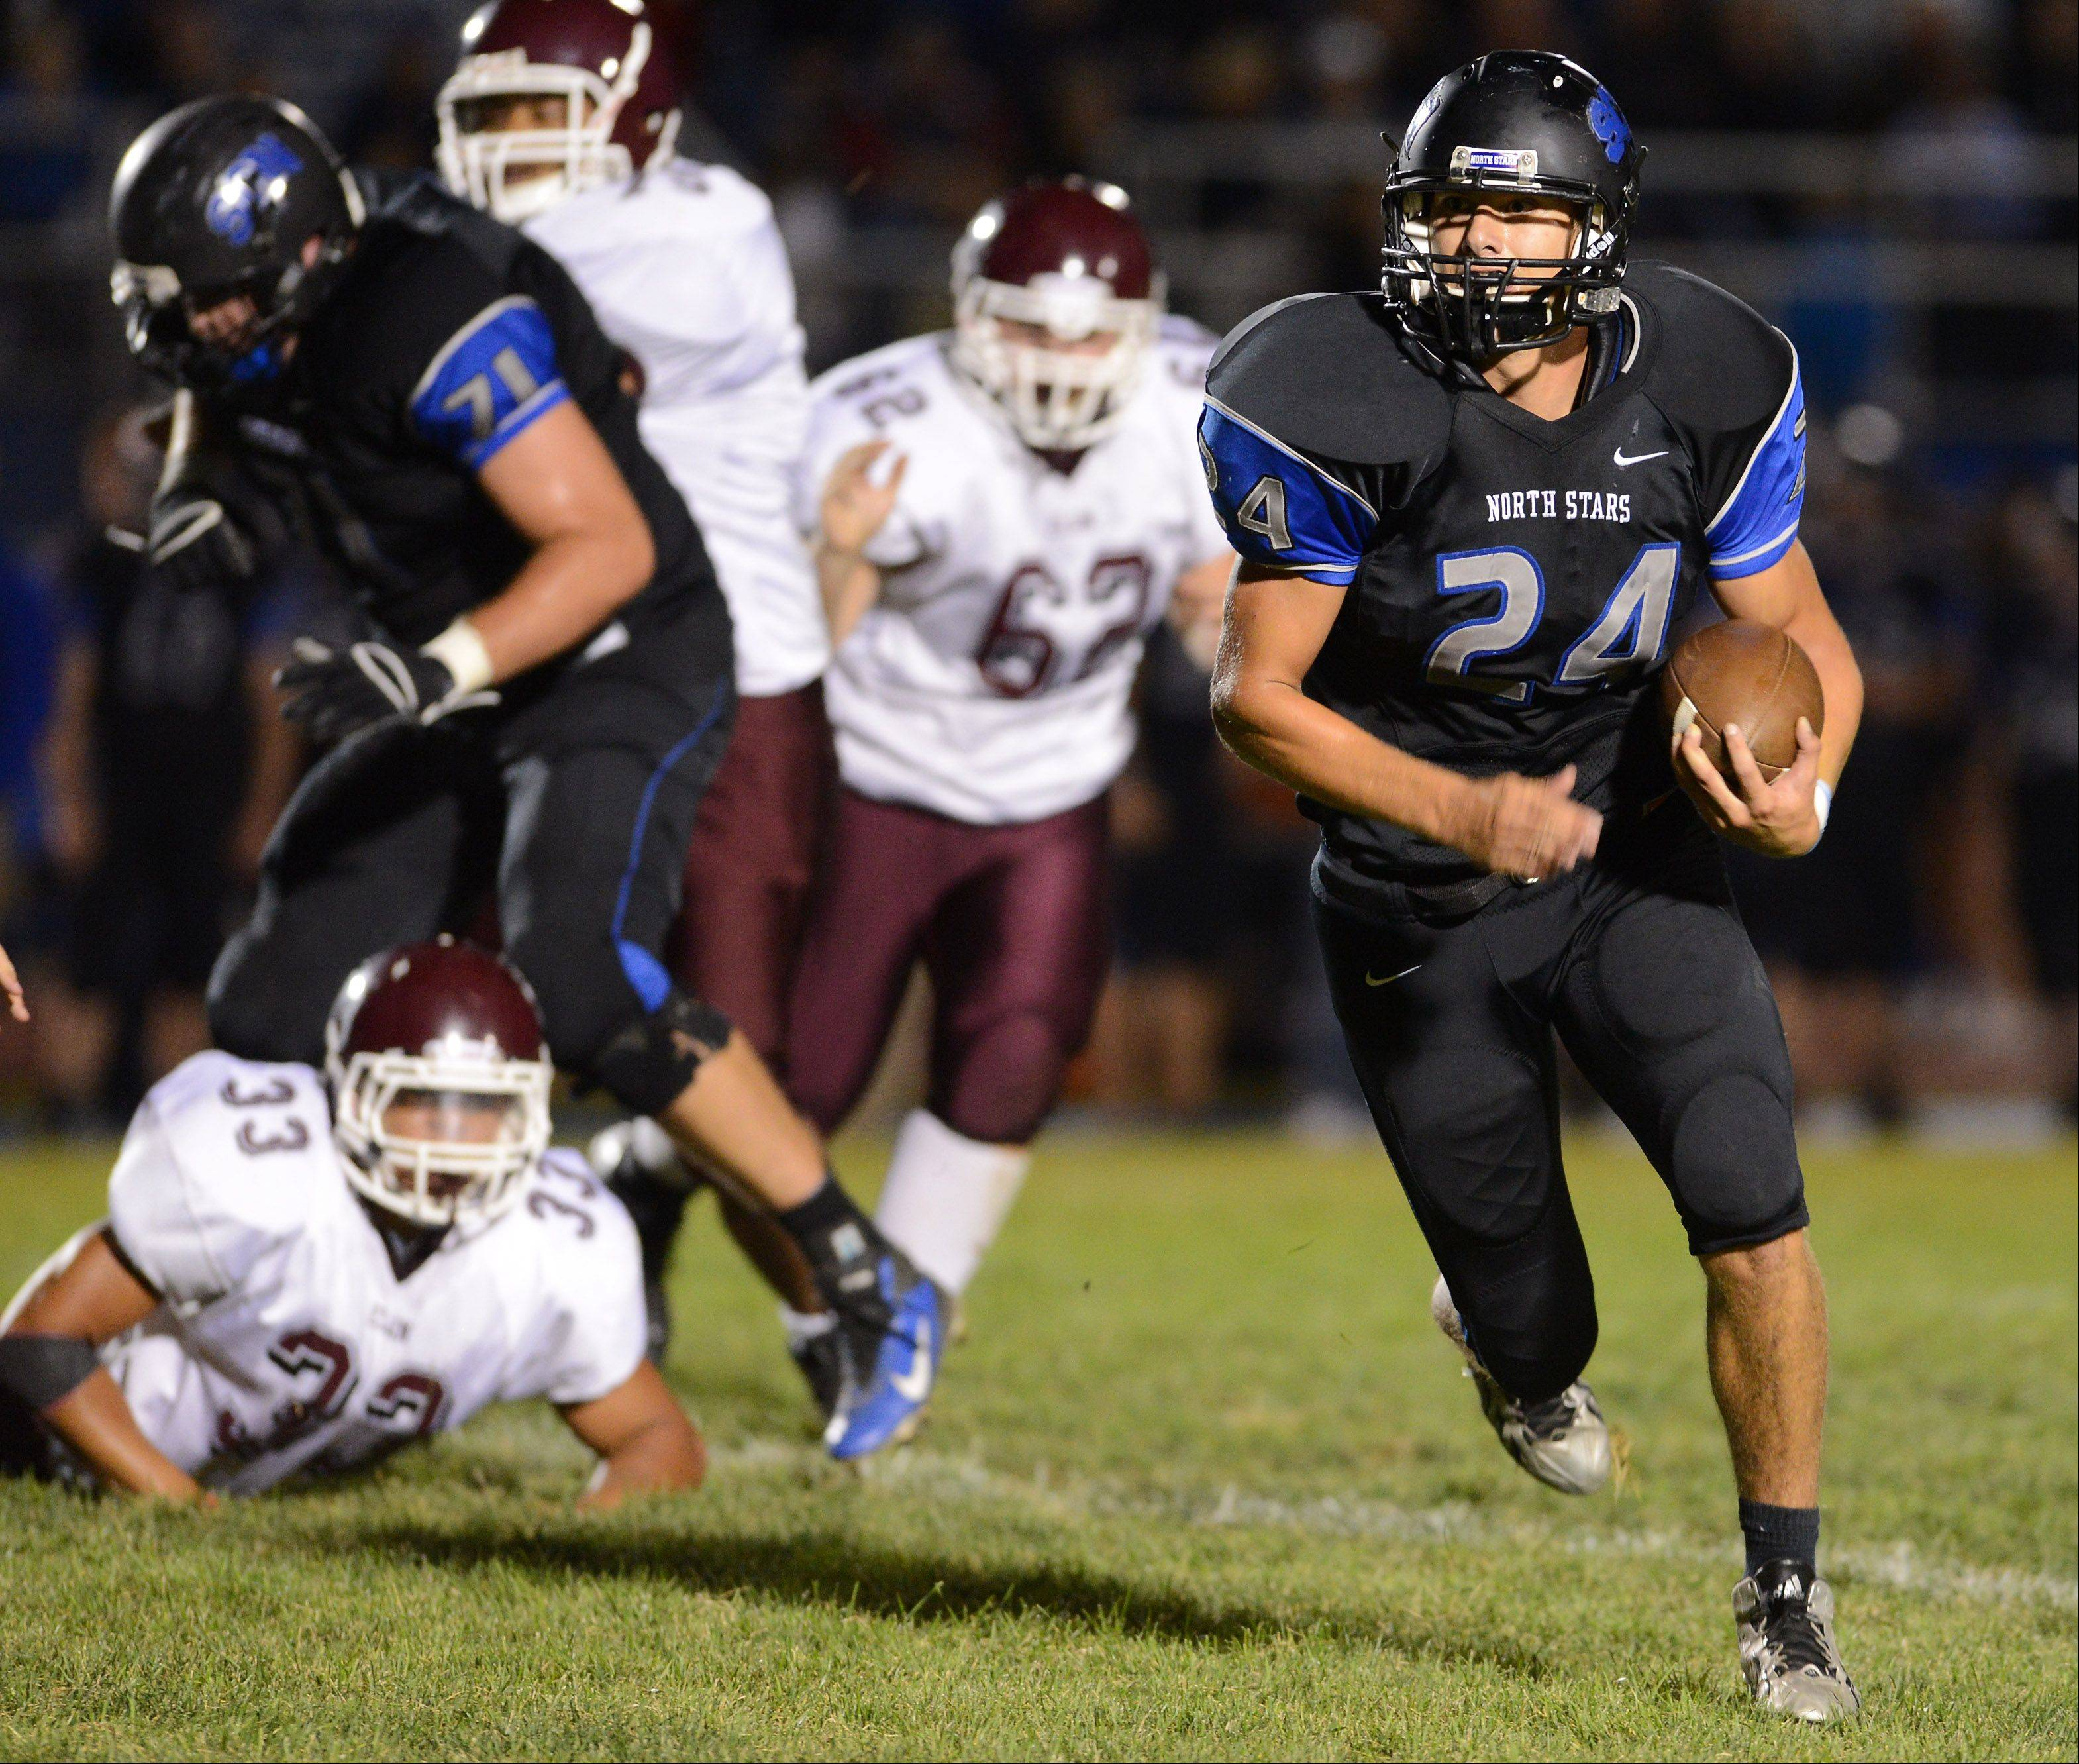 Kurtz, St. Charles North too fast for Elgin